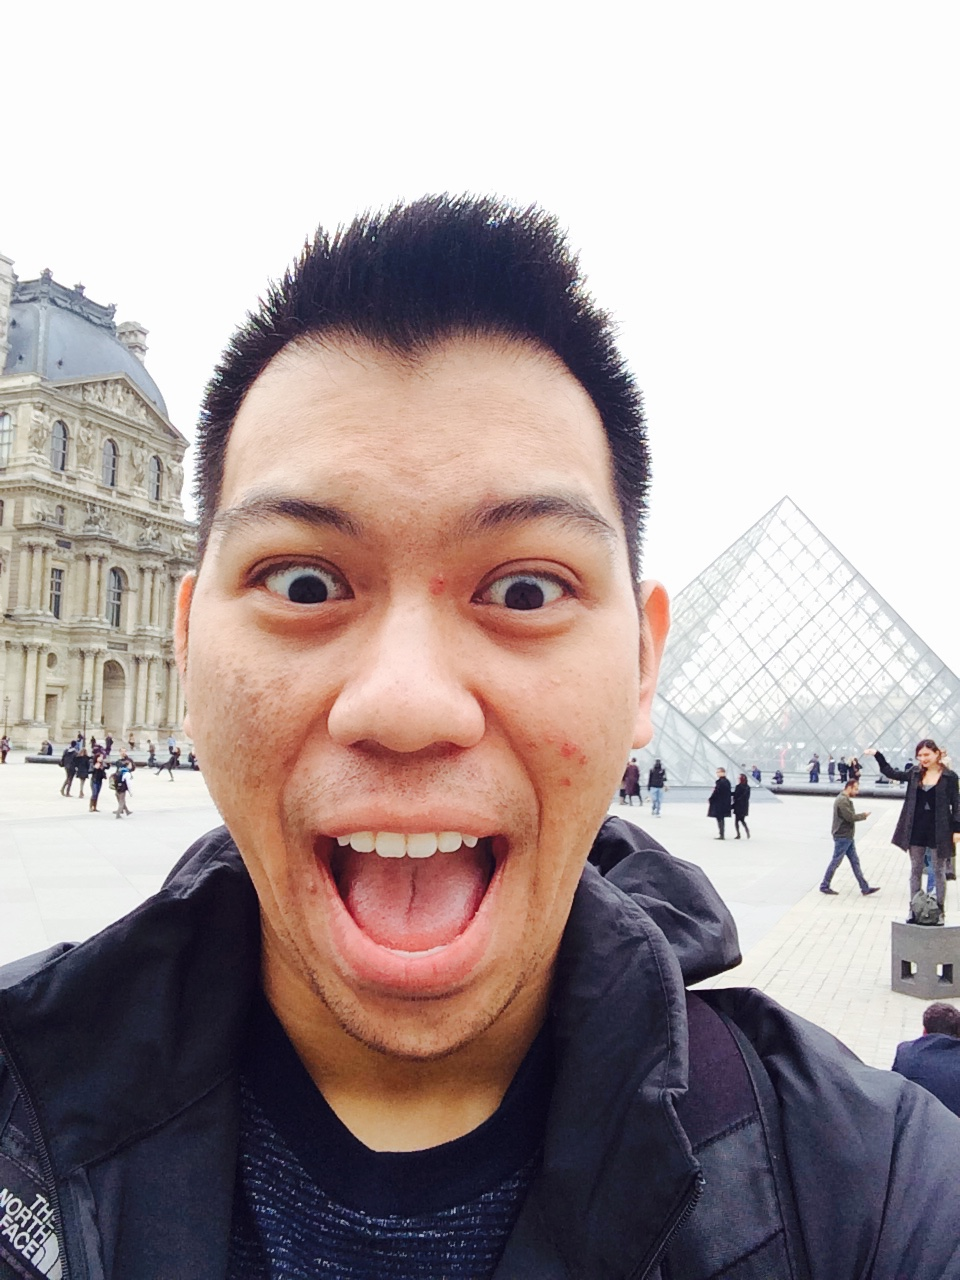 Snapping a silly shot in front of the Louvre